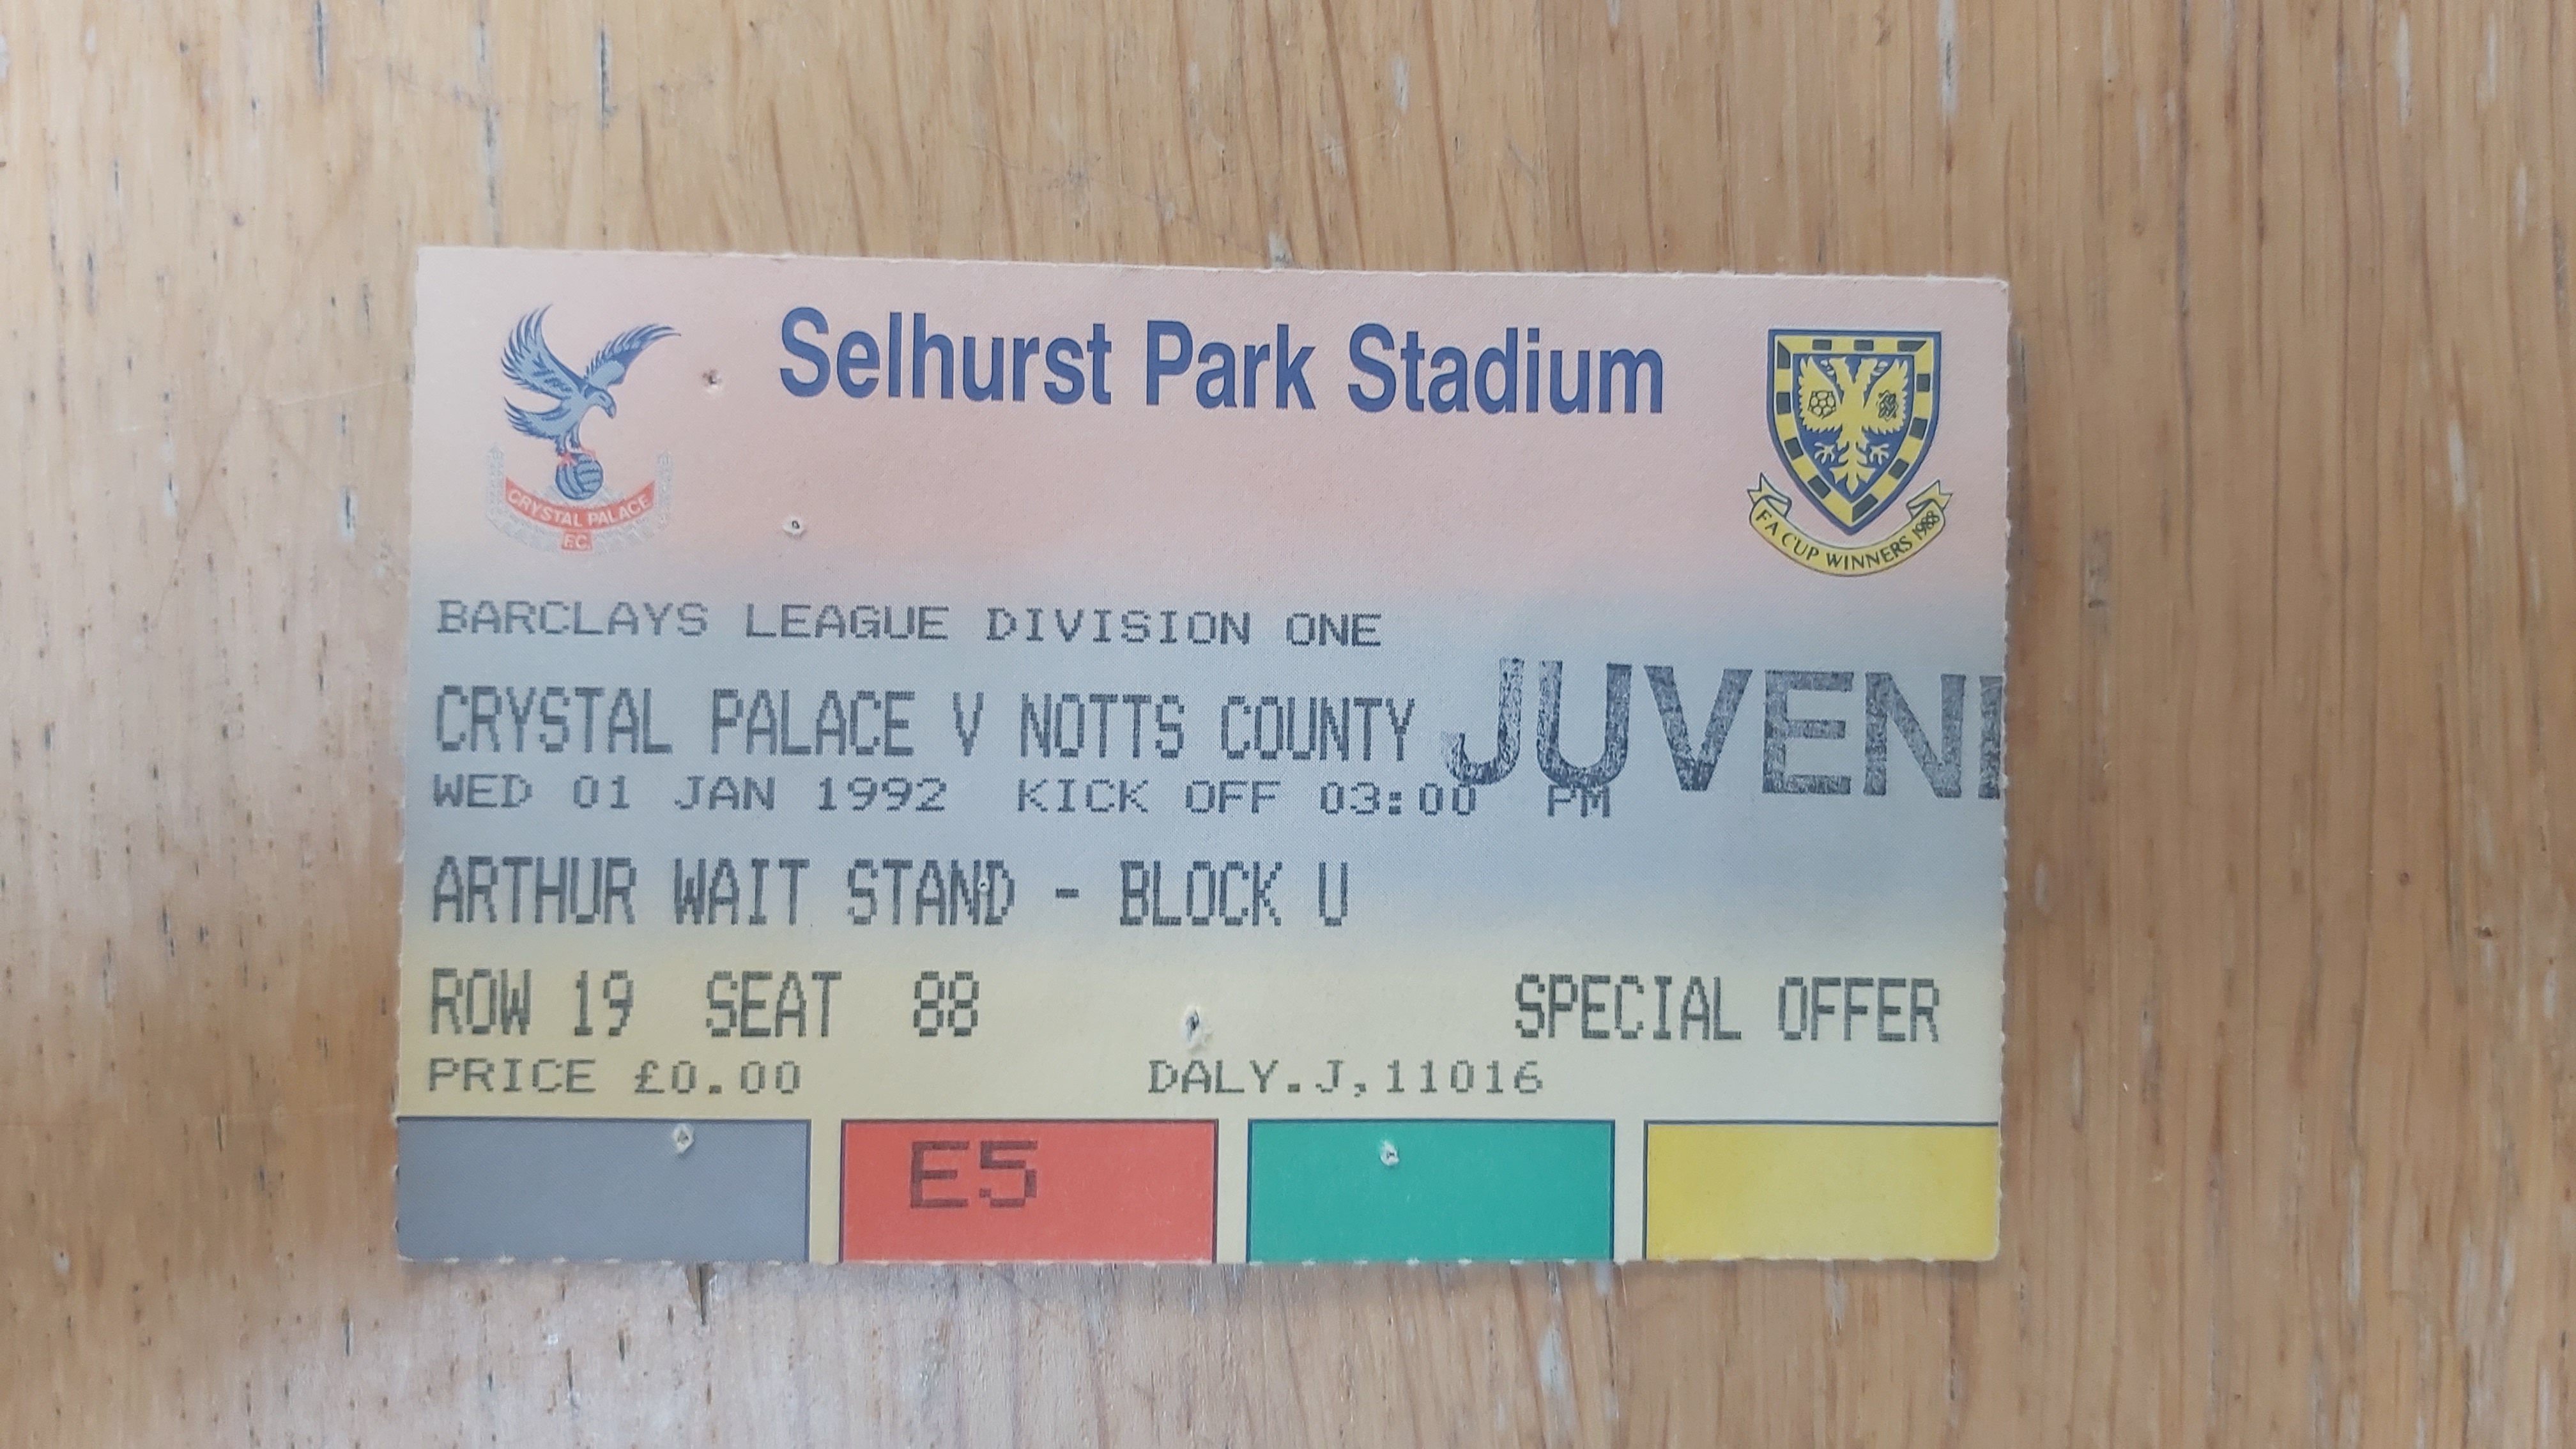 Crystal Palace vs Notts County ticket stub